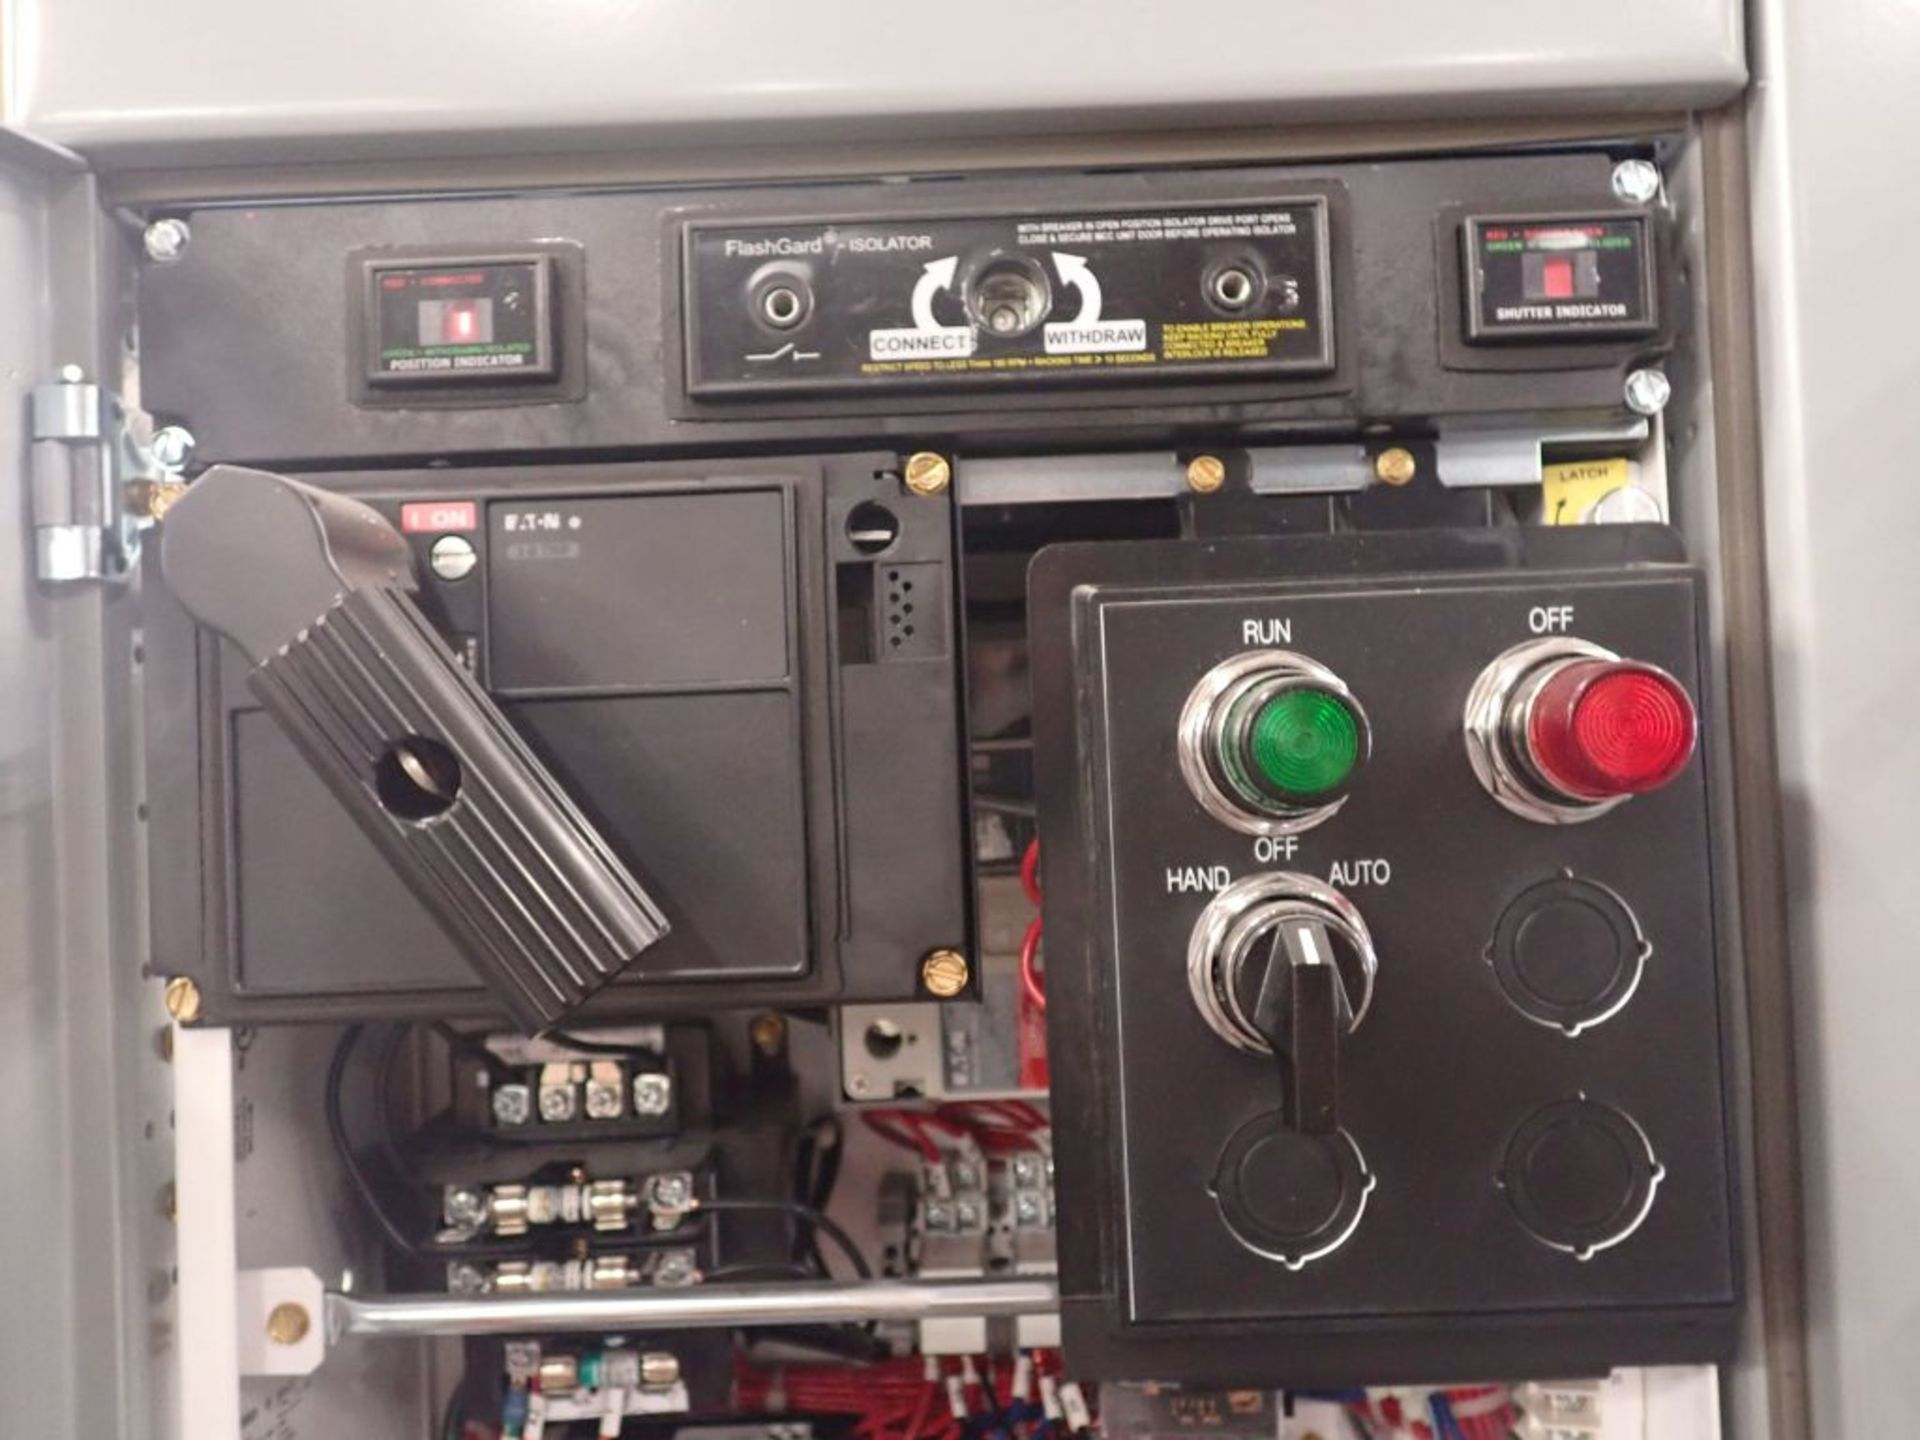 Eaton Freedom 2100 Series Motor Control Center   (2) F206-15A-10HP; (1) F206-30A-10HP; (1) FDRB- - Image 20 of 61